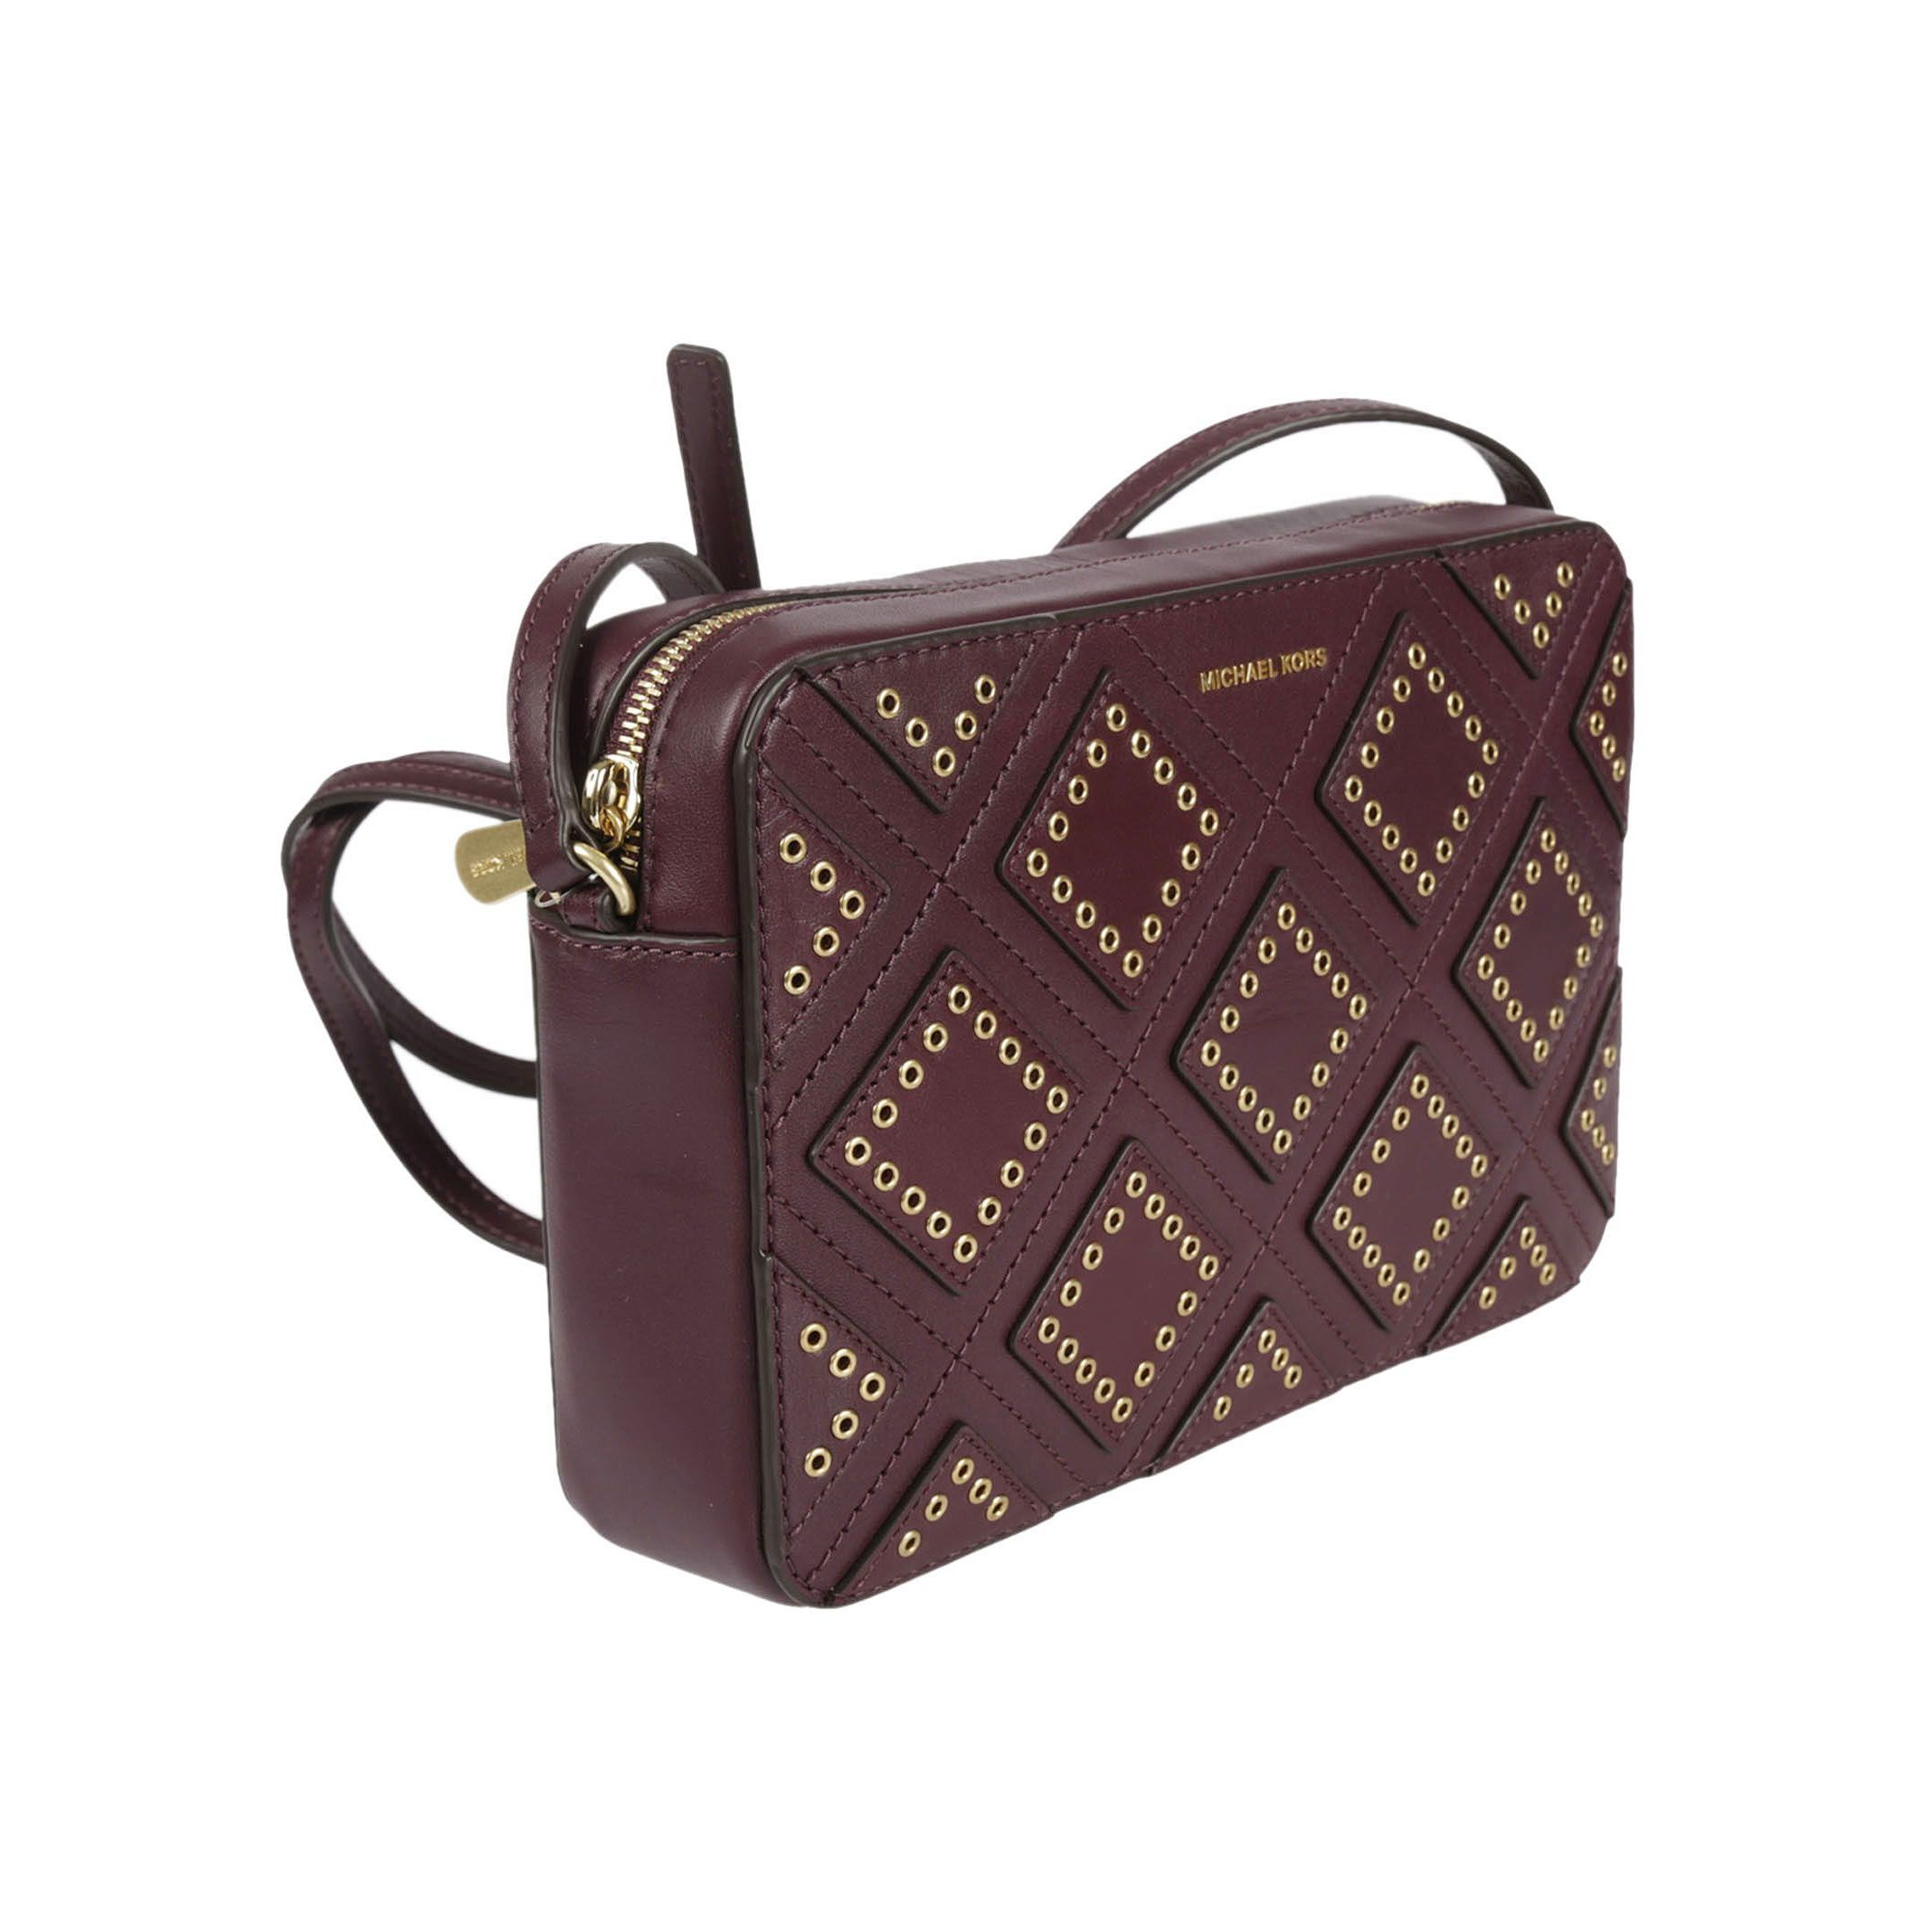 9bb7075317bf7a Shop Michael Kors Plum Leather Diamond Grommet Jet Set Travel Large East  West Crossbody - Free Shipping Today - Overstock - 13344123